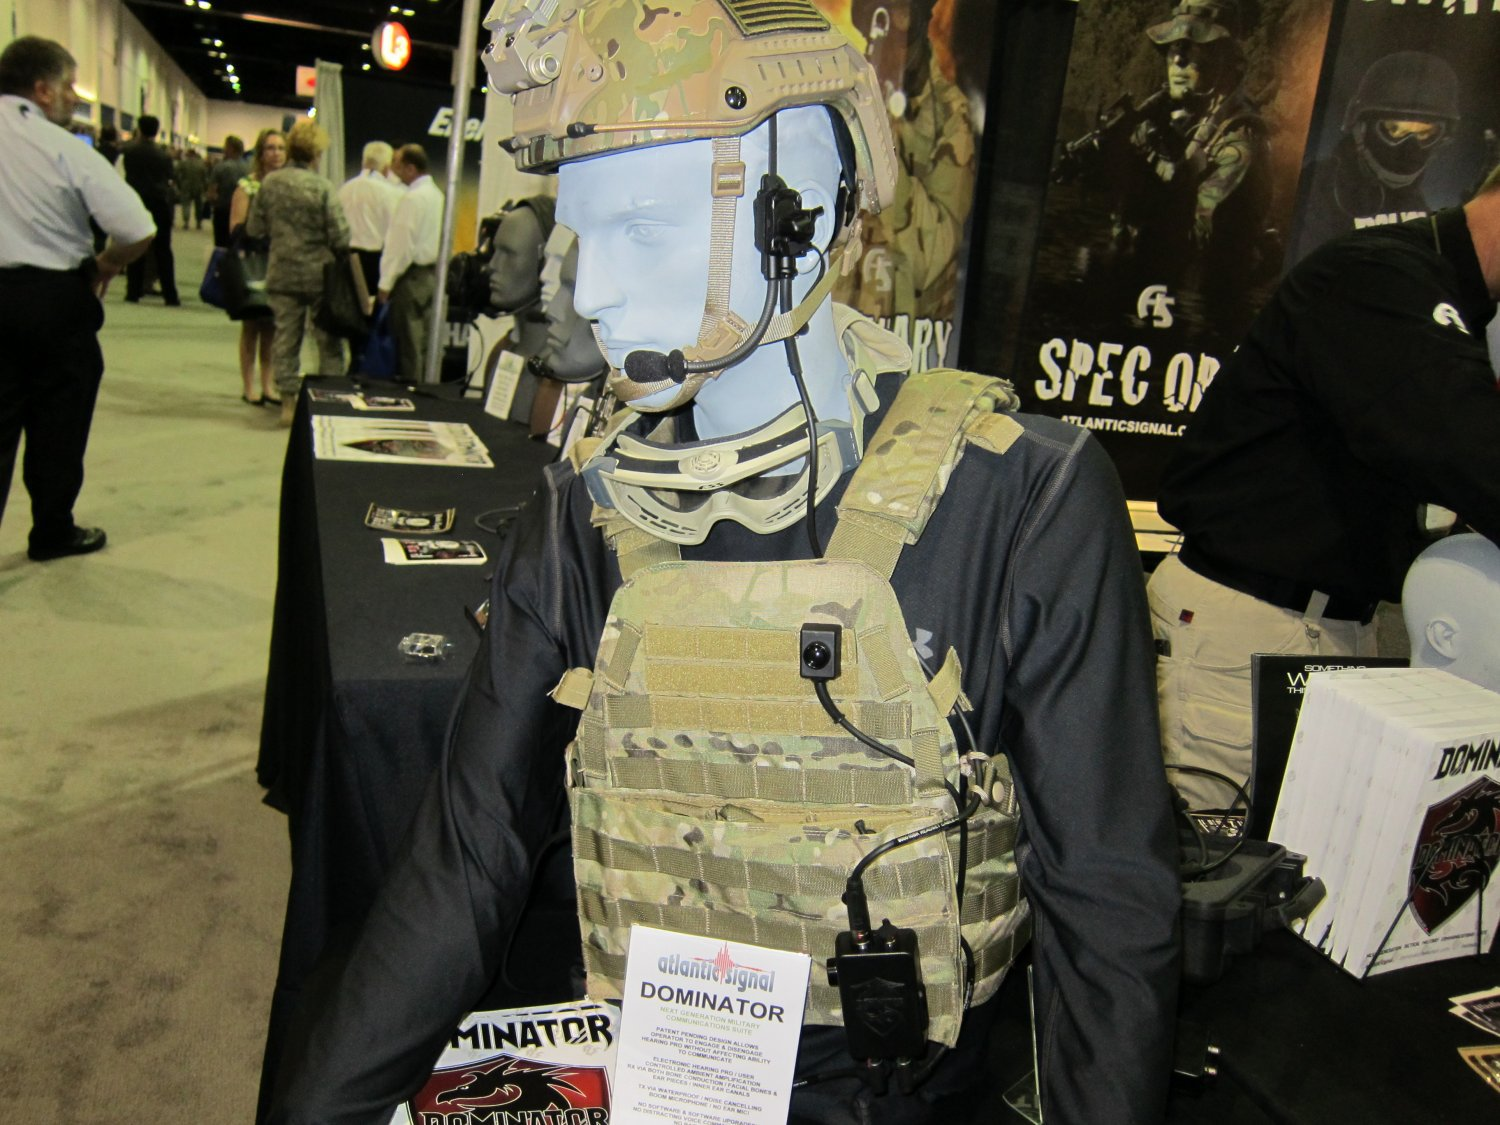 Atlantic Signal Dominator Waterproof Bone Conduction Hearing Pro Tactical Comms Headset and Ops Core SPECOPS Combat Helmet SOFIC 2011 8 <!  :en  >Atlantic Signal Dominator Waterproof Bone Conduction/Hearing Pro Tactical Headset Good to Go! U.S. Military Special Operations Tactical Comms Headset Goes Prime Time at SOFIC 2011 (Photos and Video!) <!  :  >